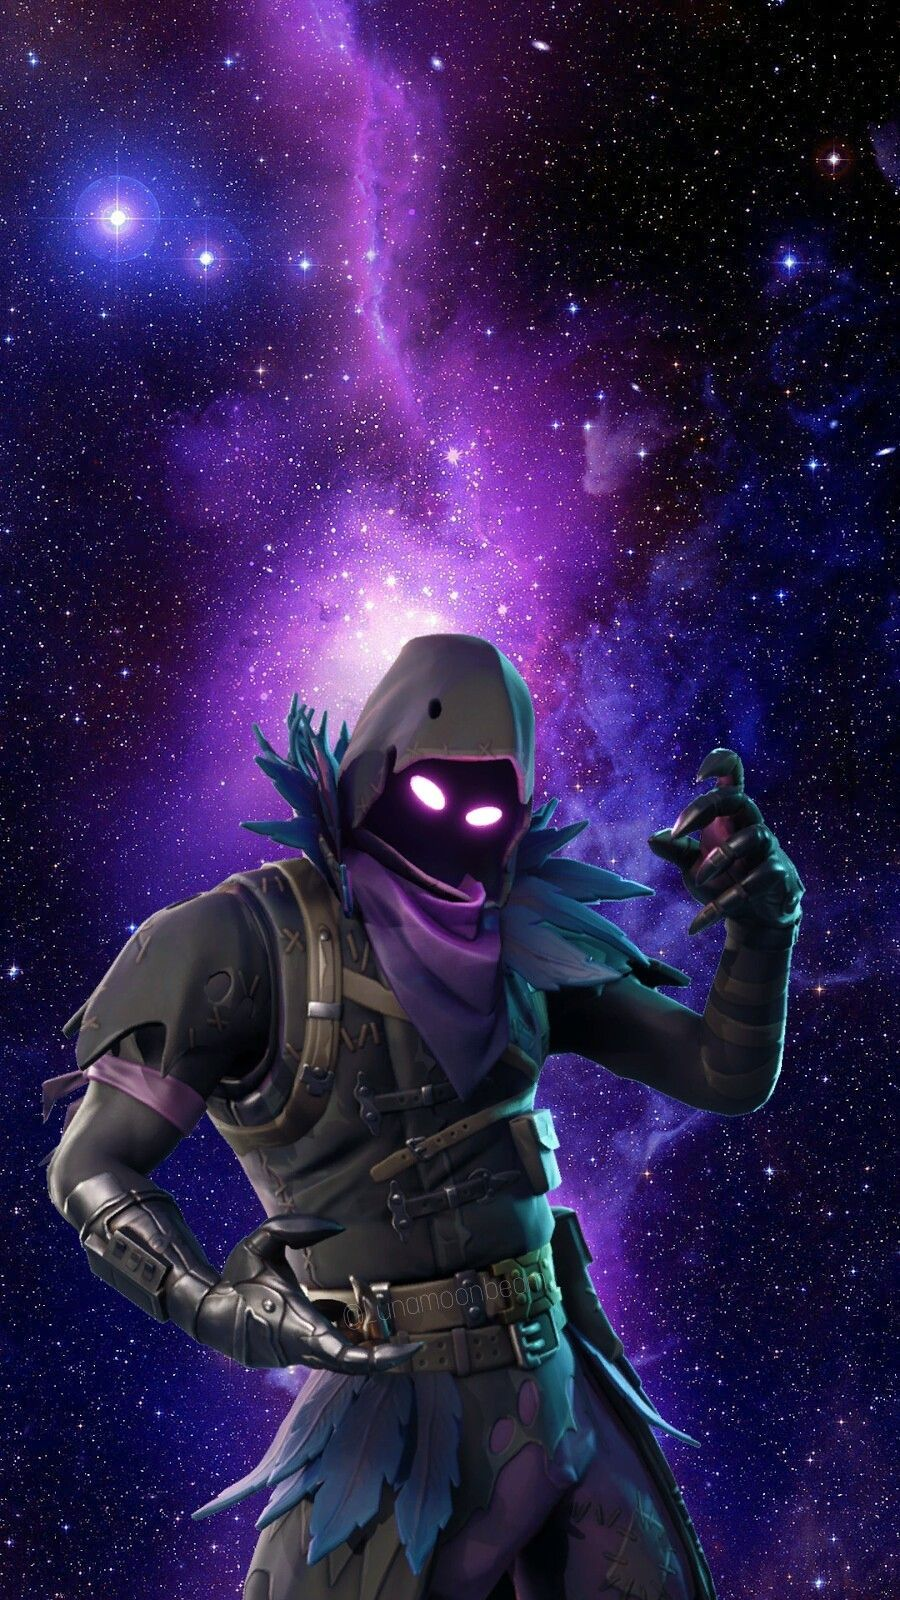 HD Fortnite wallpapers Fondo de pantalla de humo, Fondos